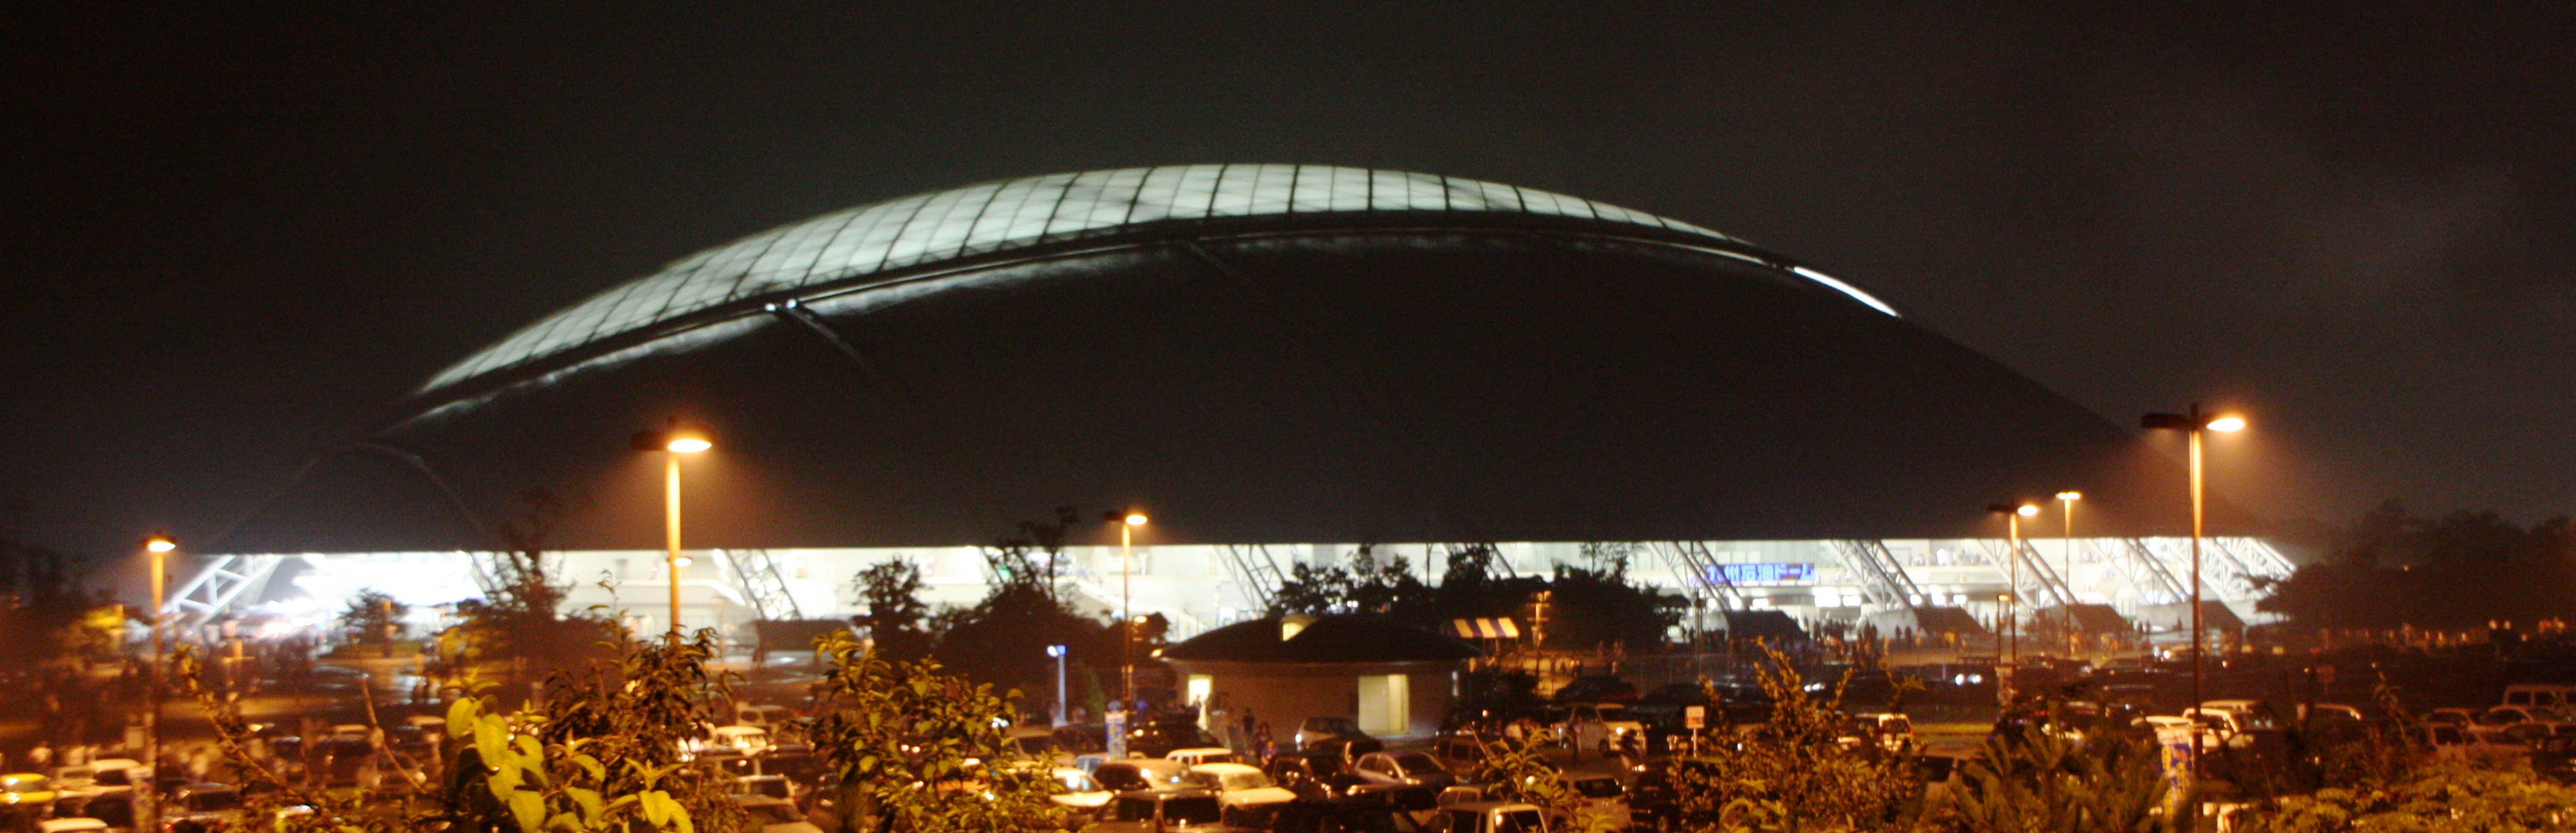 Oita Stadium, Japan-The Big Eye Homesthetics biggest stadium